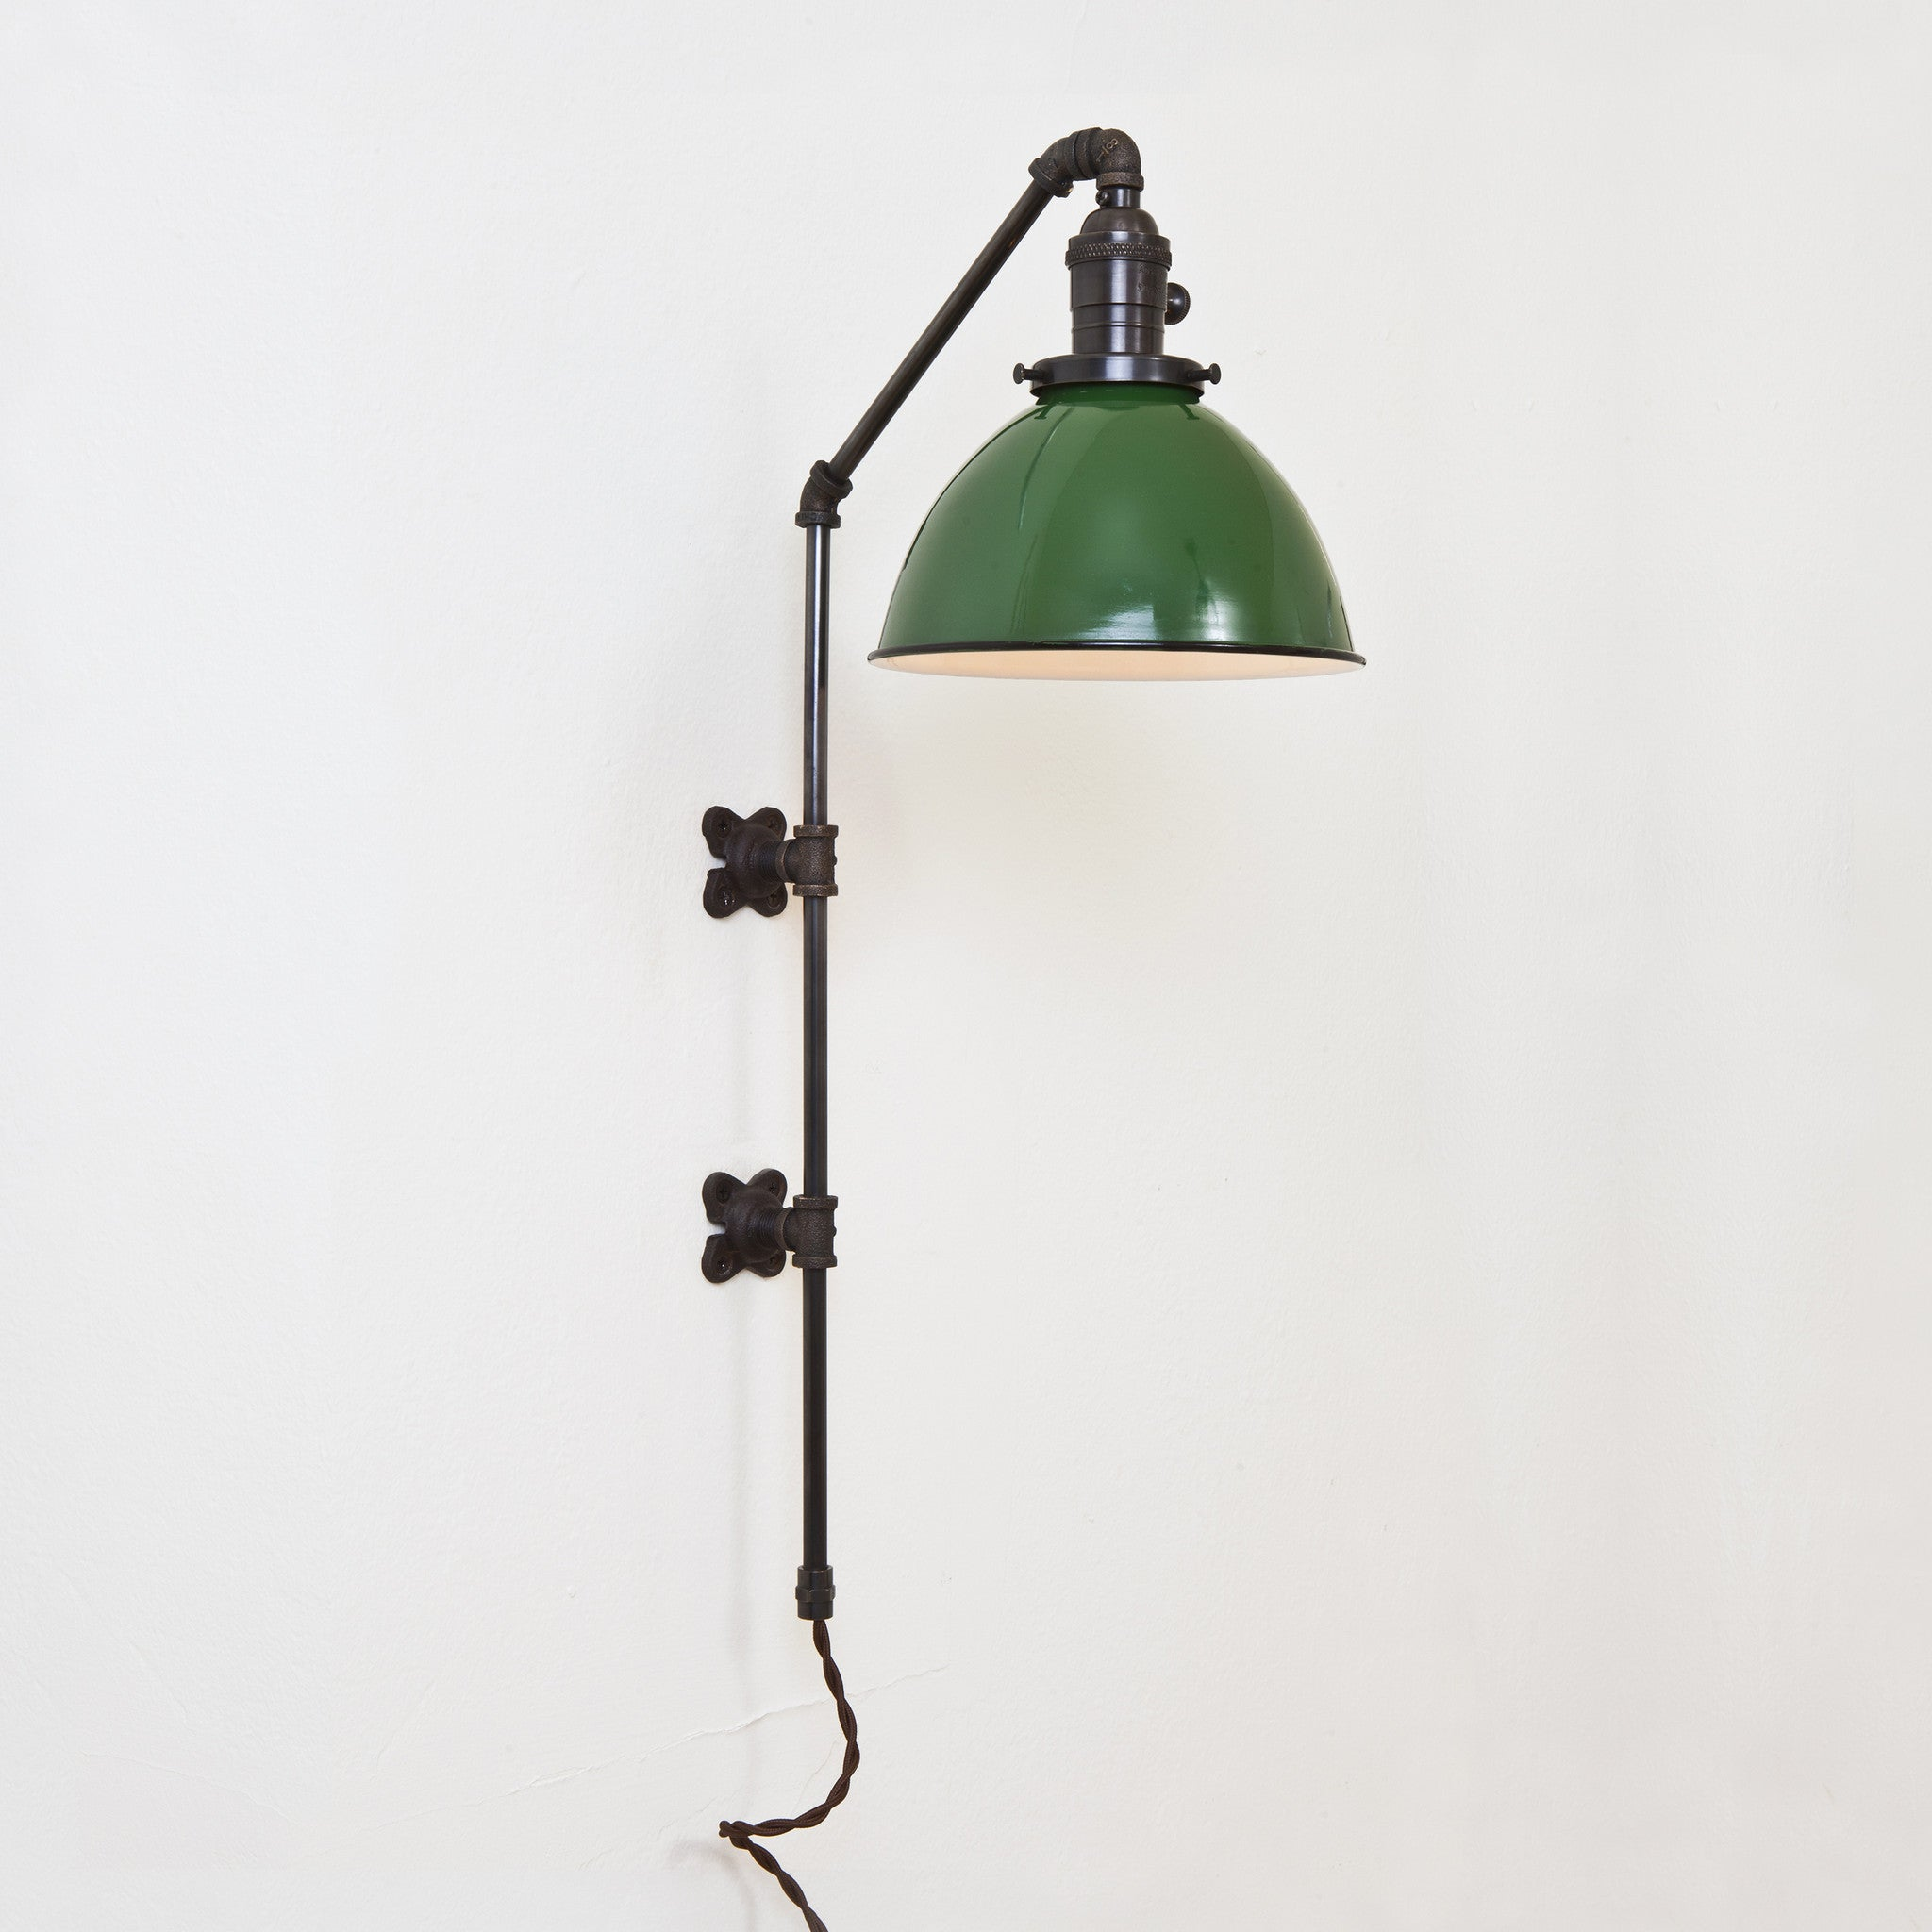 Brass Pipe Sconce - Dome Shade